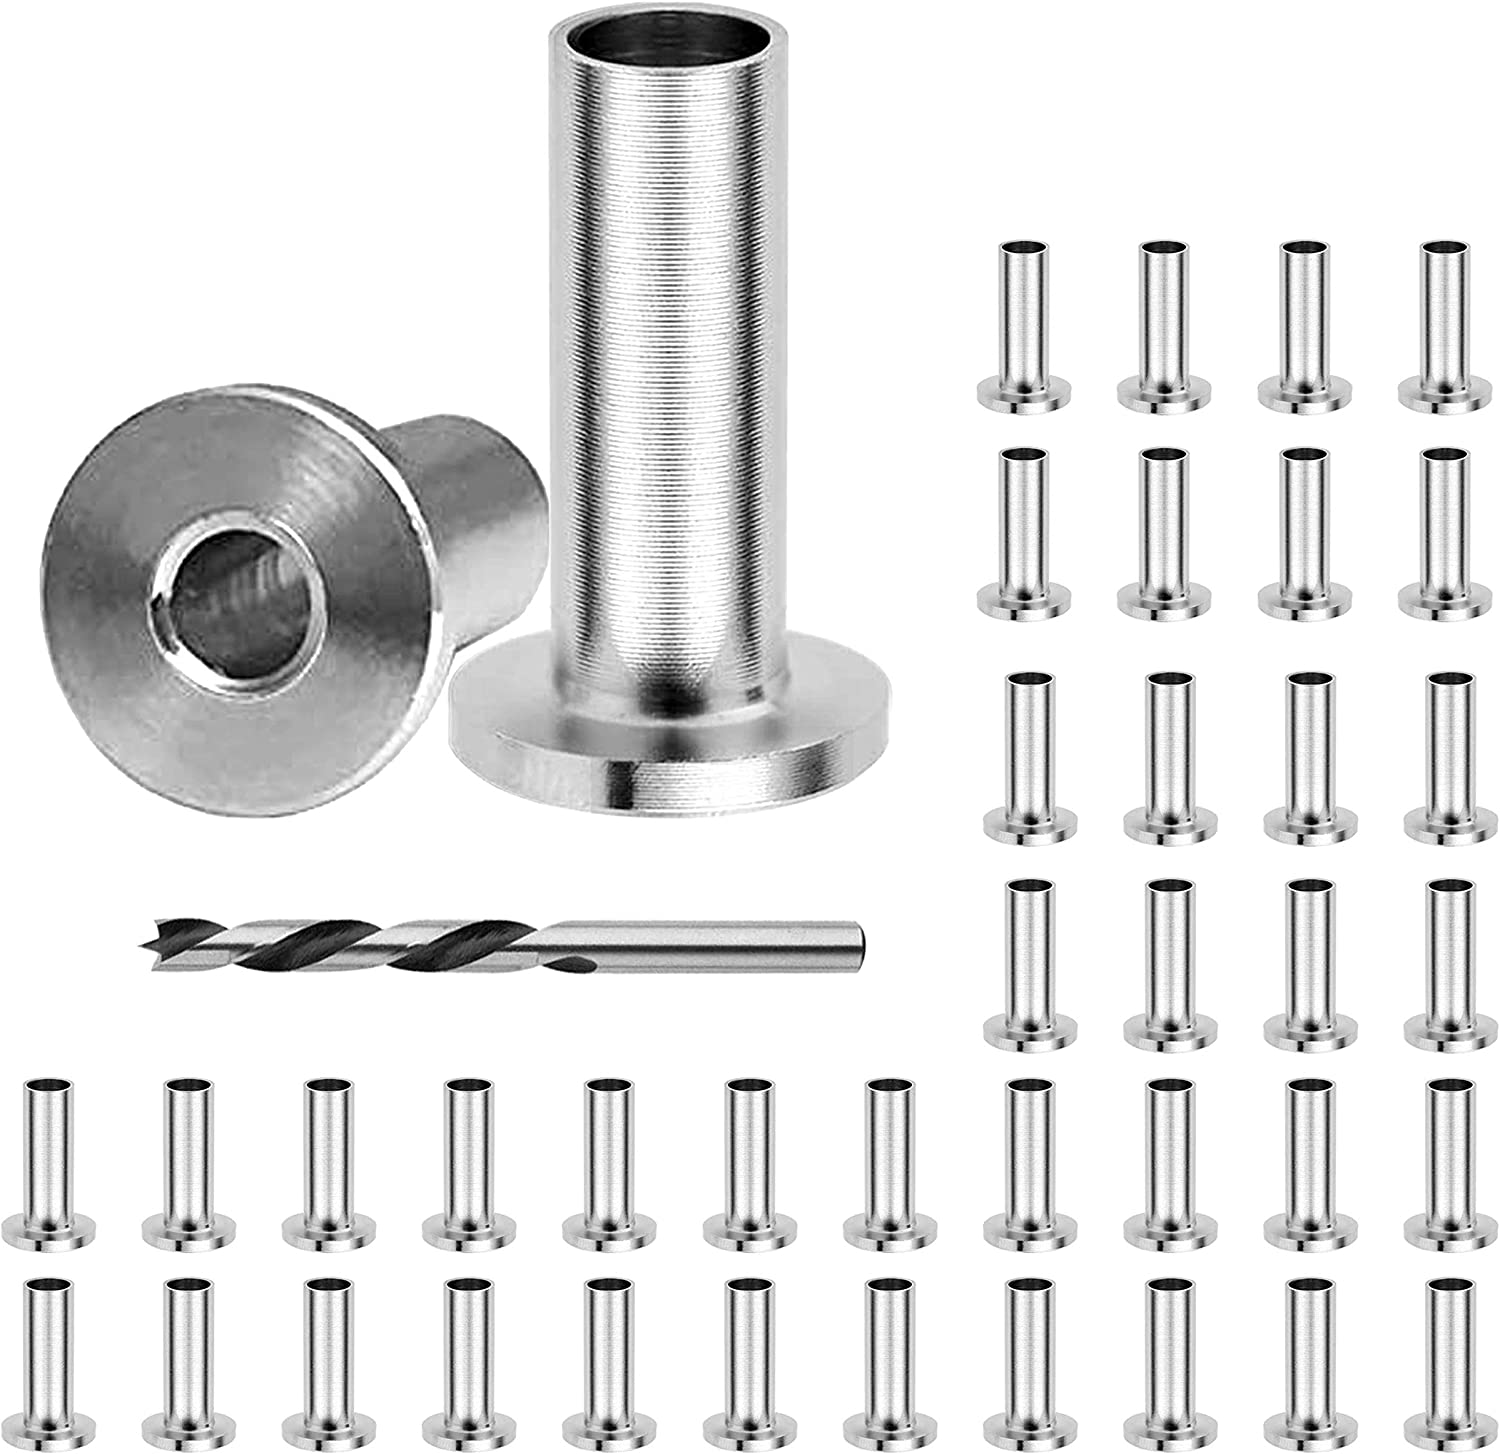 Max 73% OFF Cable Railing Kit low-pricing - Deck Kit: Steel Stainless Sleev Protector 40